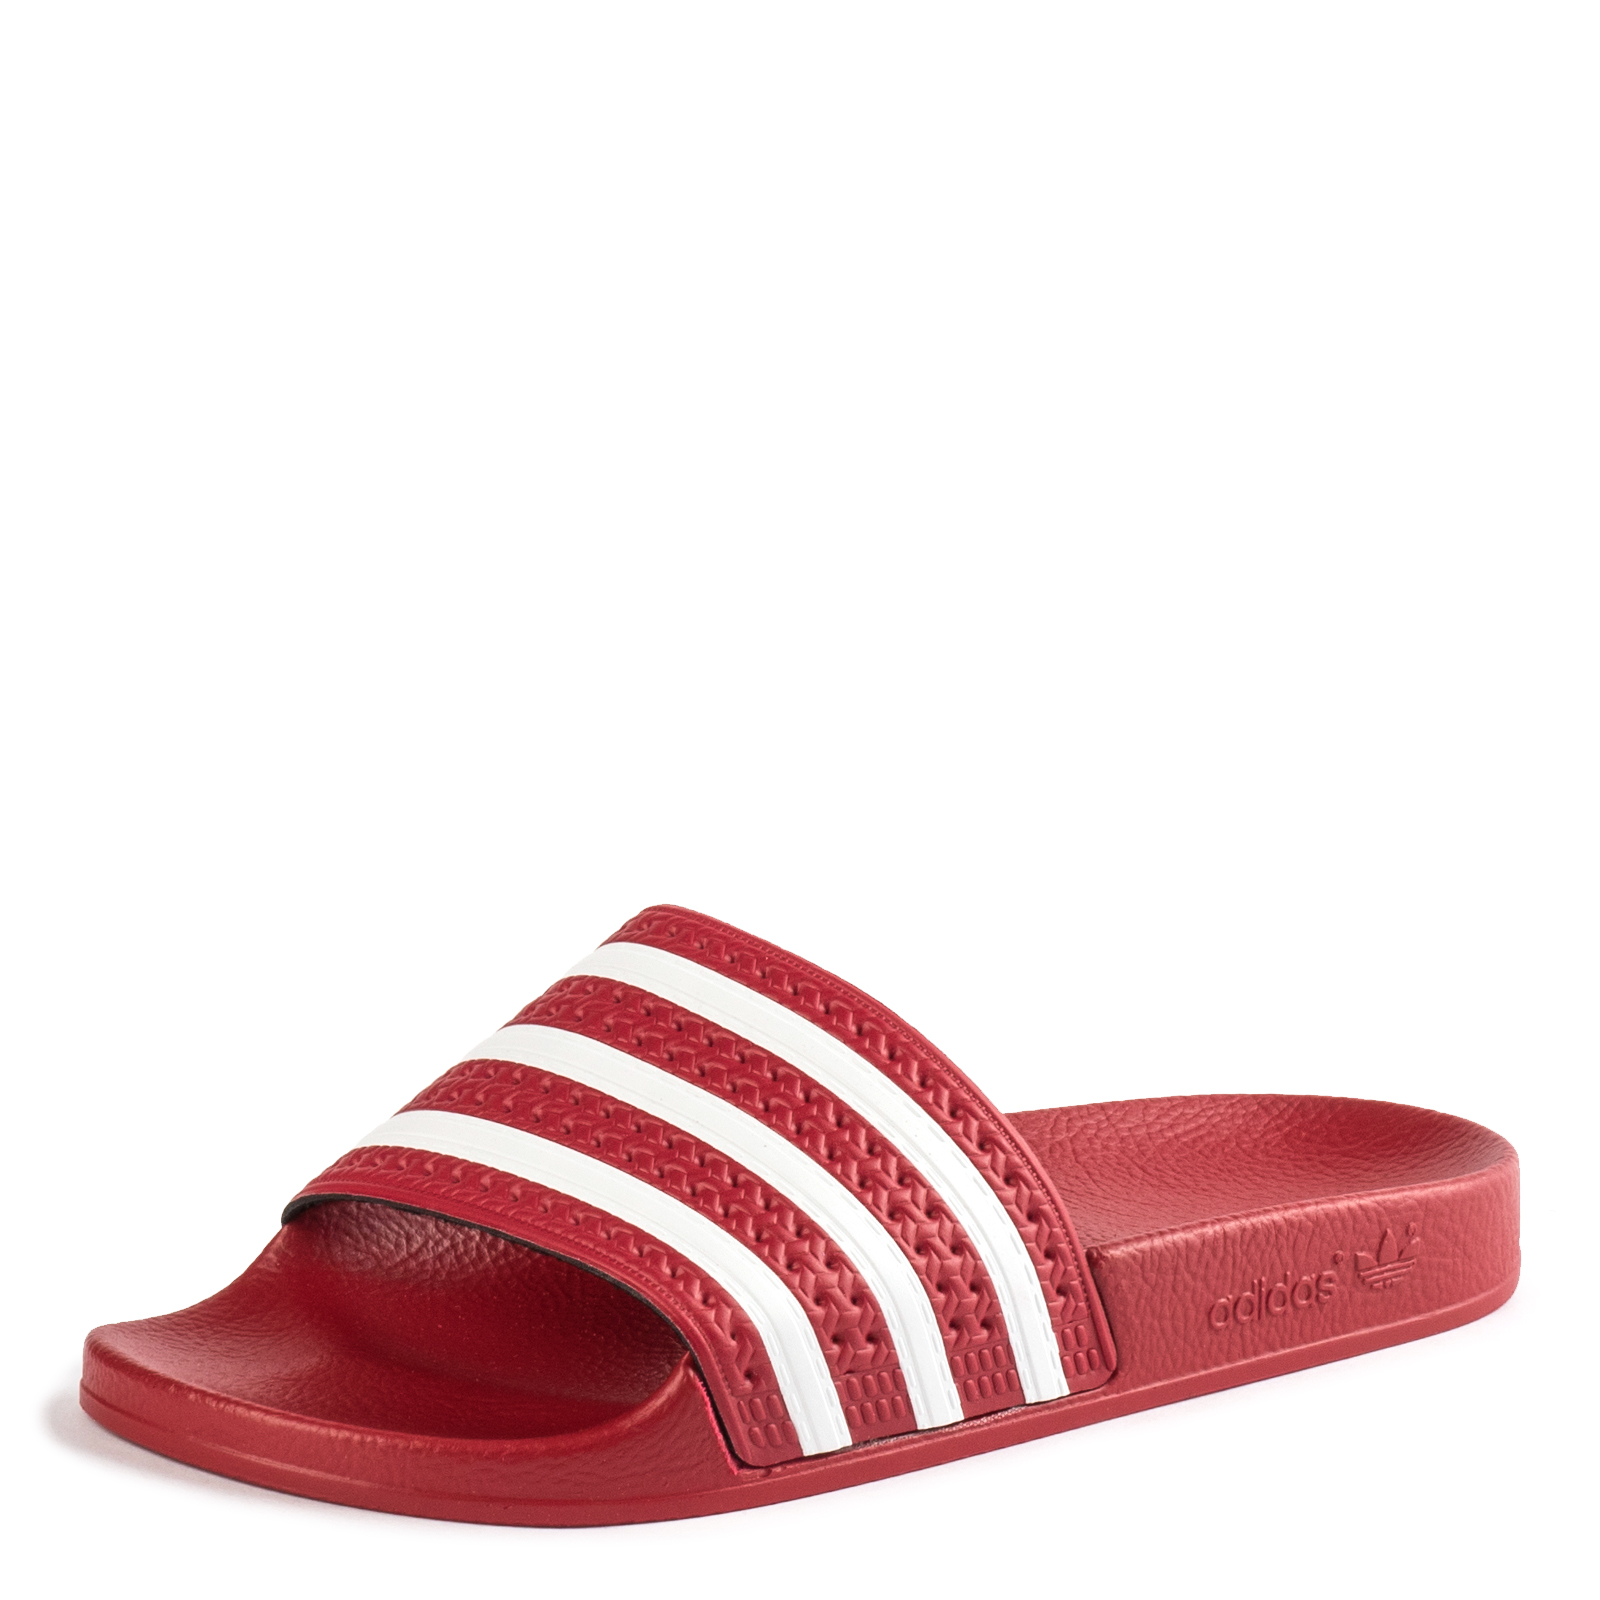 Slippers Adidas 288193 sports and entertainment for men slippers adidas 280647 sports and entertainment for men